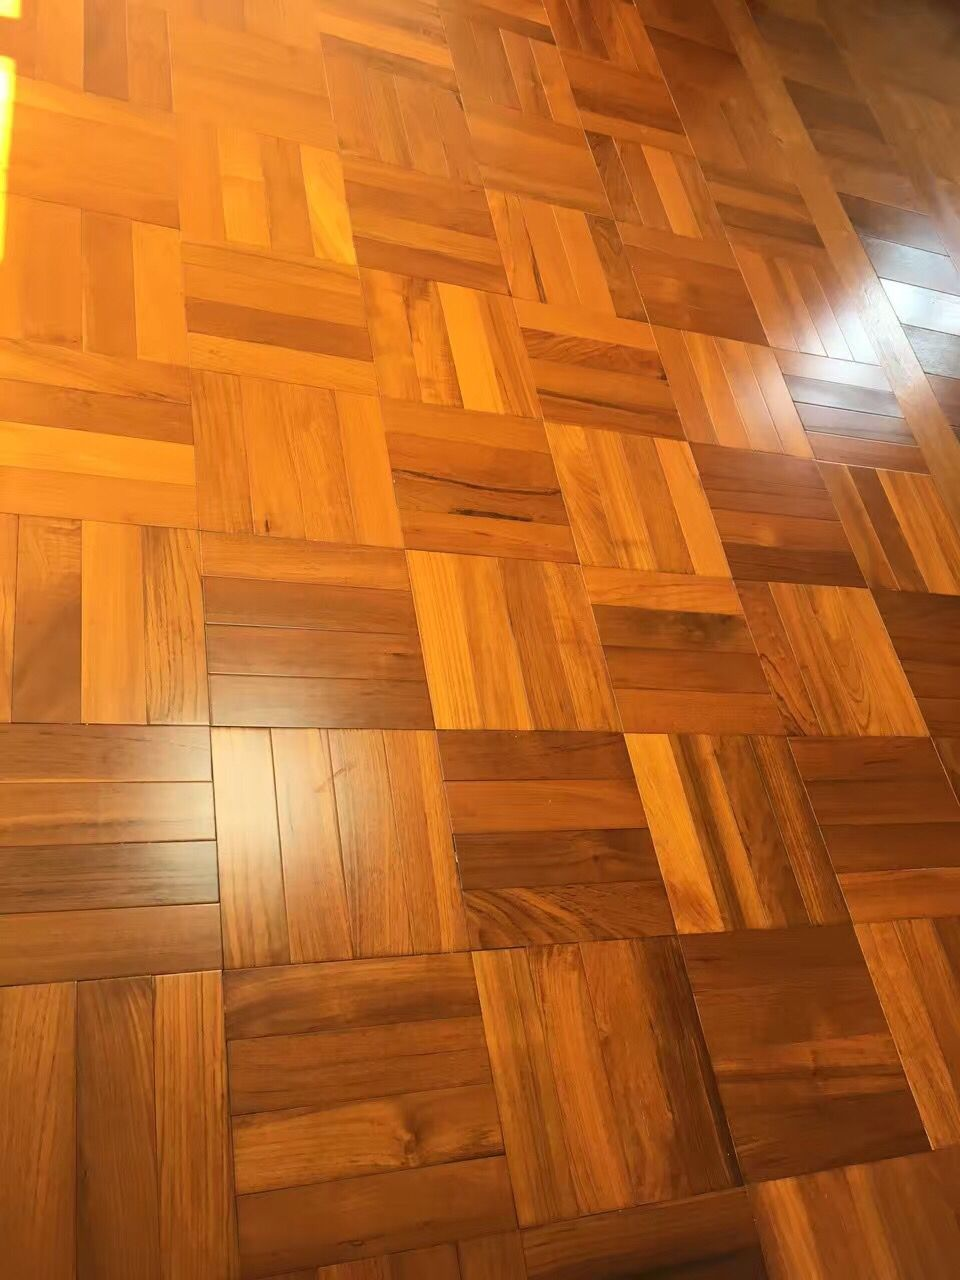 Burma Teak Hardwood Flooring In Parquet Style More Details About